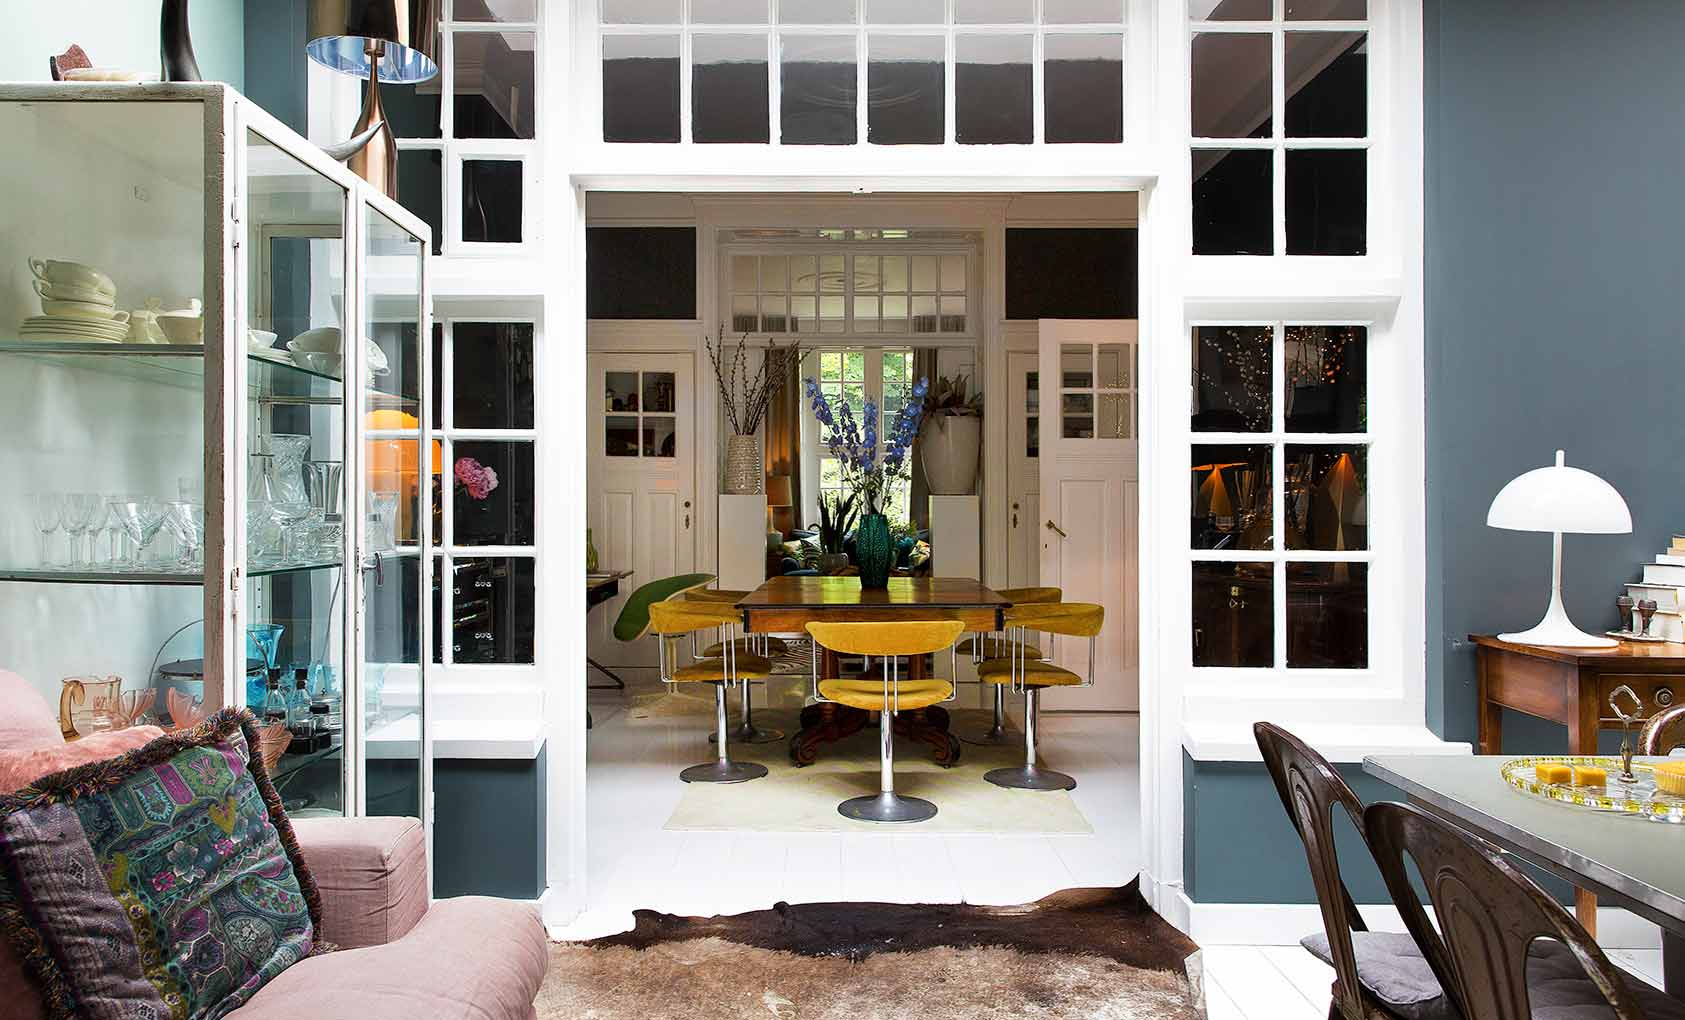 In the Netherlands, a 100-Year-Old Home Made of Many Styles, Design*Sponge